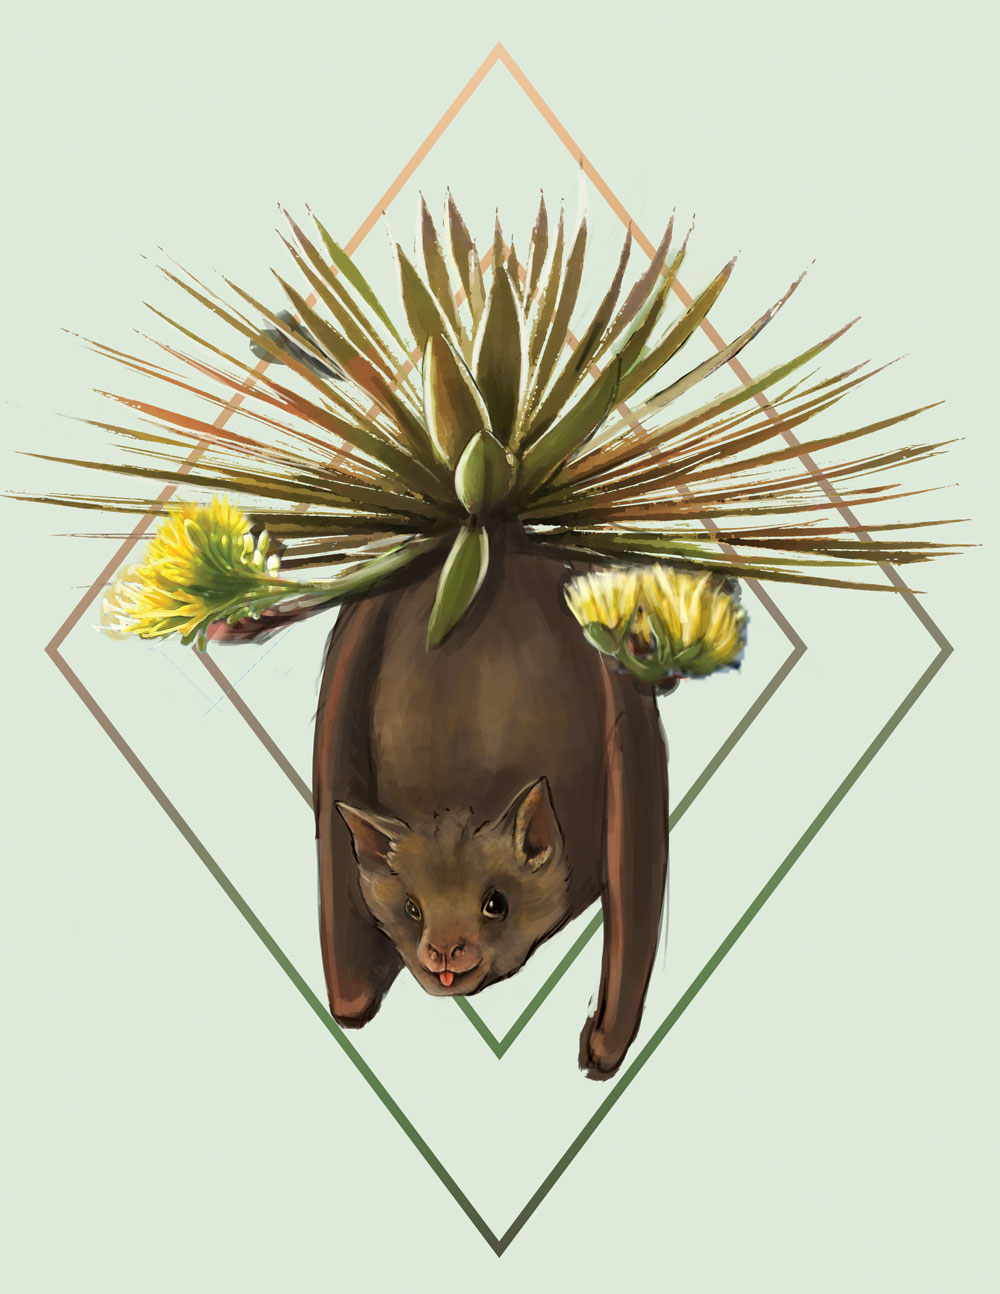 An illustration of a fruit bat with an agave plant.